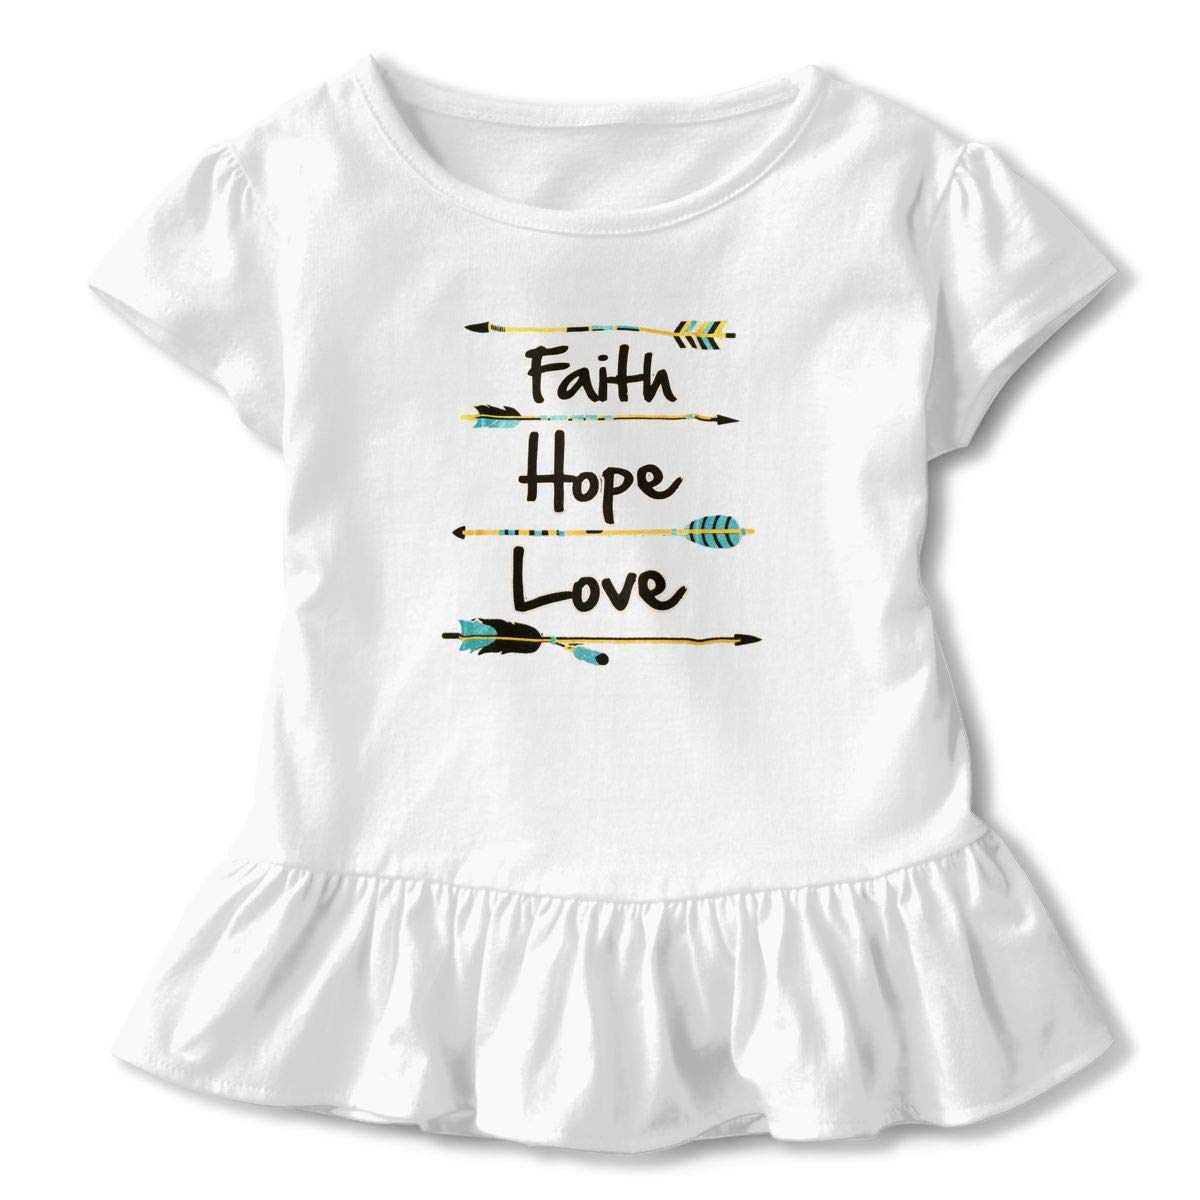 Cute and Glittery Faith Hope Love Toddler Baby Girls Short Sleeve Ruffle T-Shirt